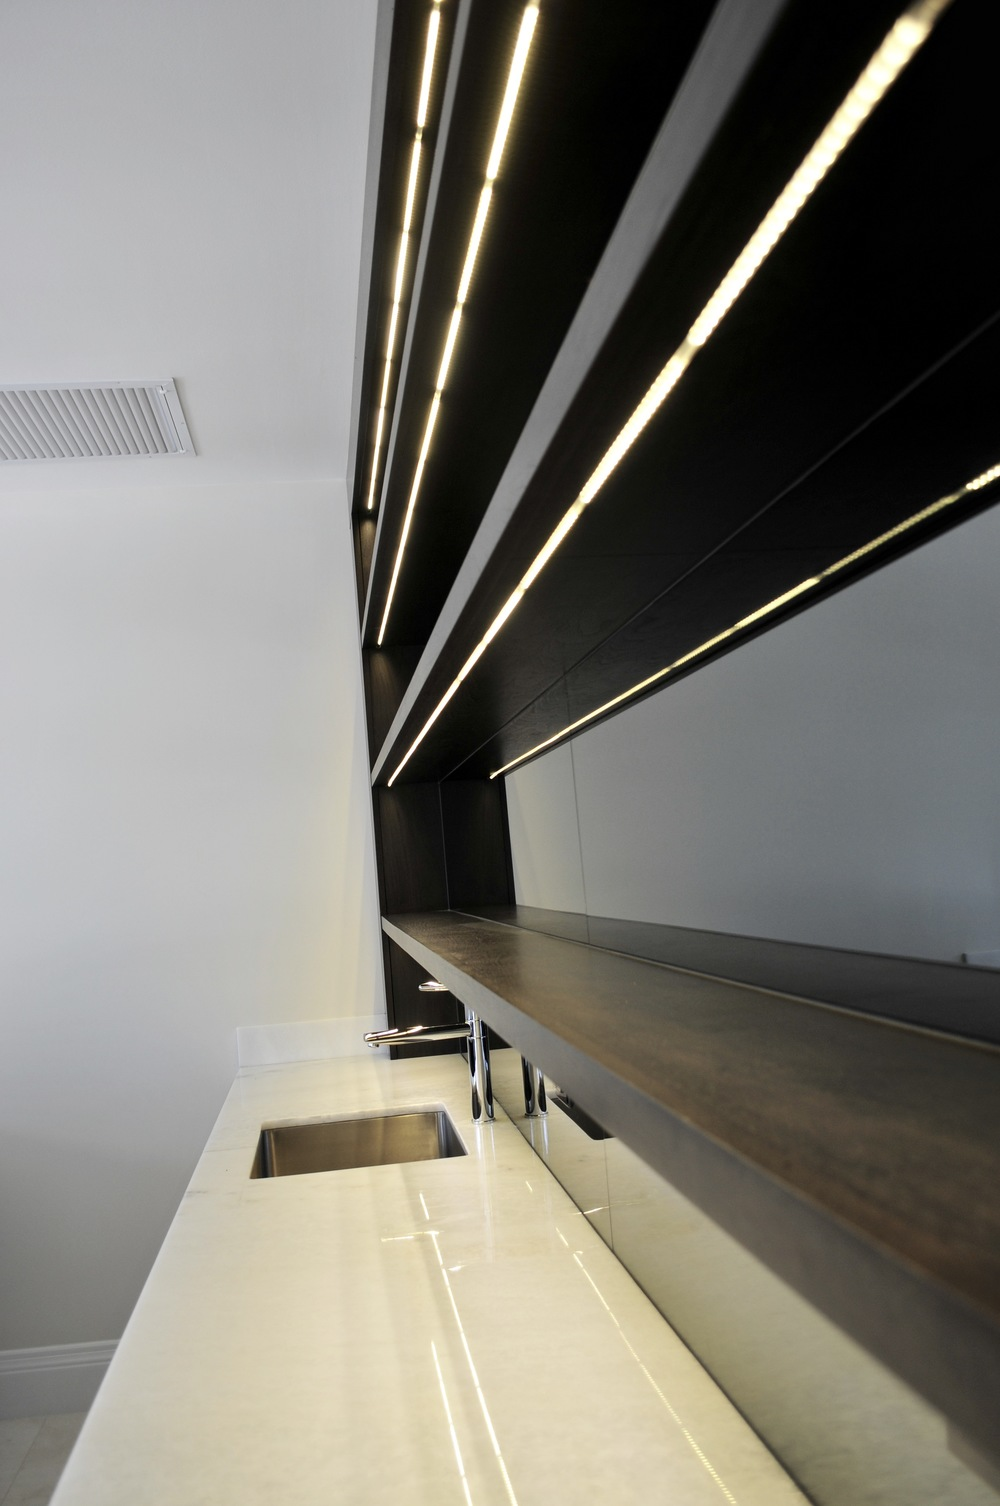 We used waterproof Led lights to add dimension to the bar shelving.jpg